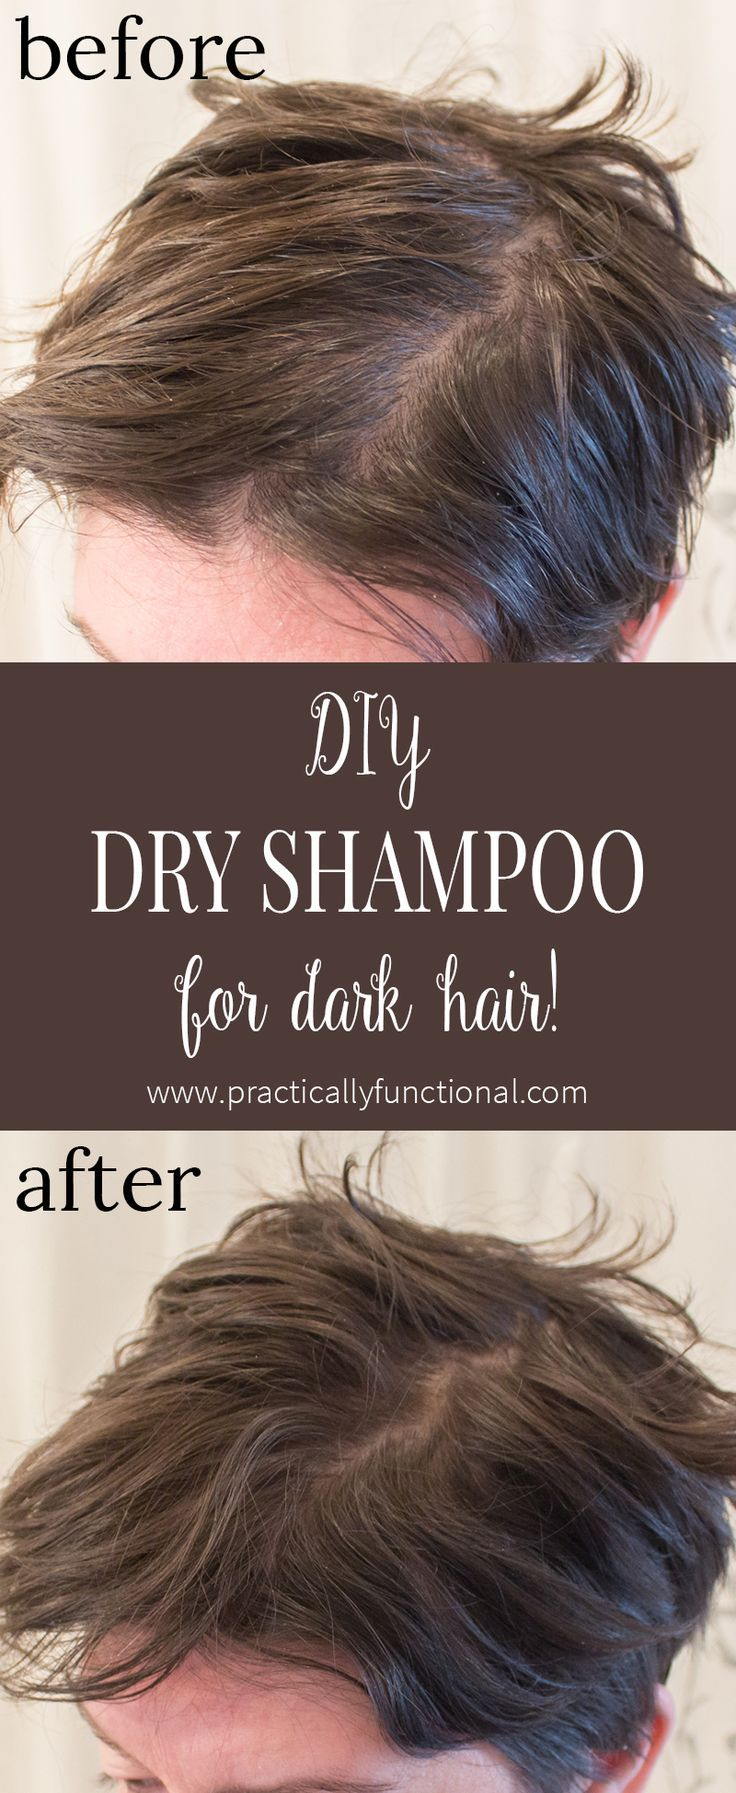 Diy All Natural Dry Shampoo 2 Ingredients Natural Dry Shampoo Dry Shampoo Diy Dry Shampoo